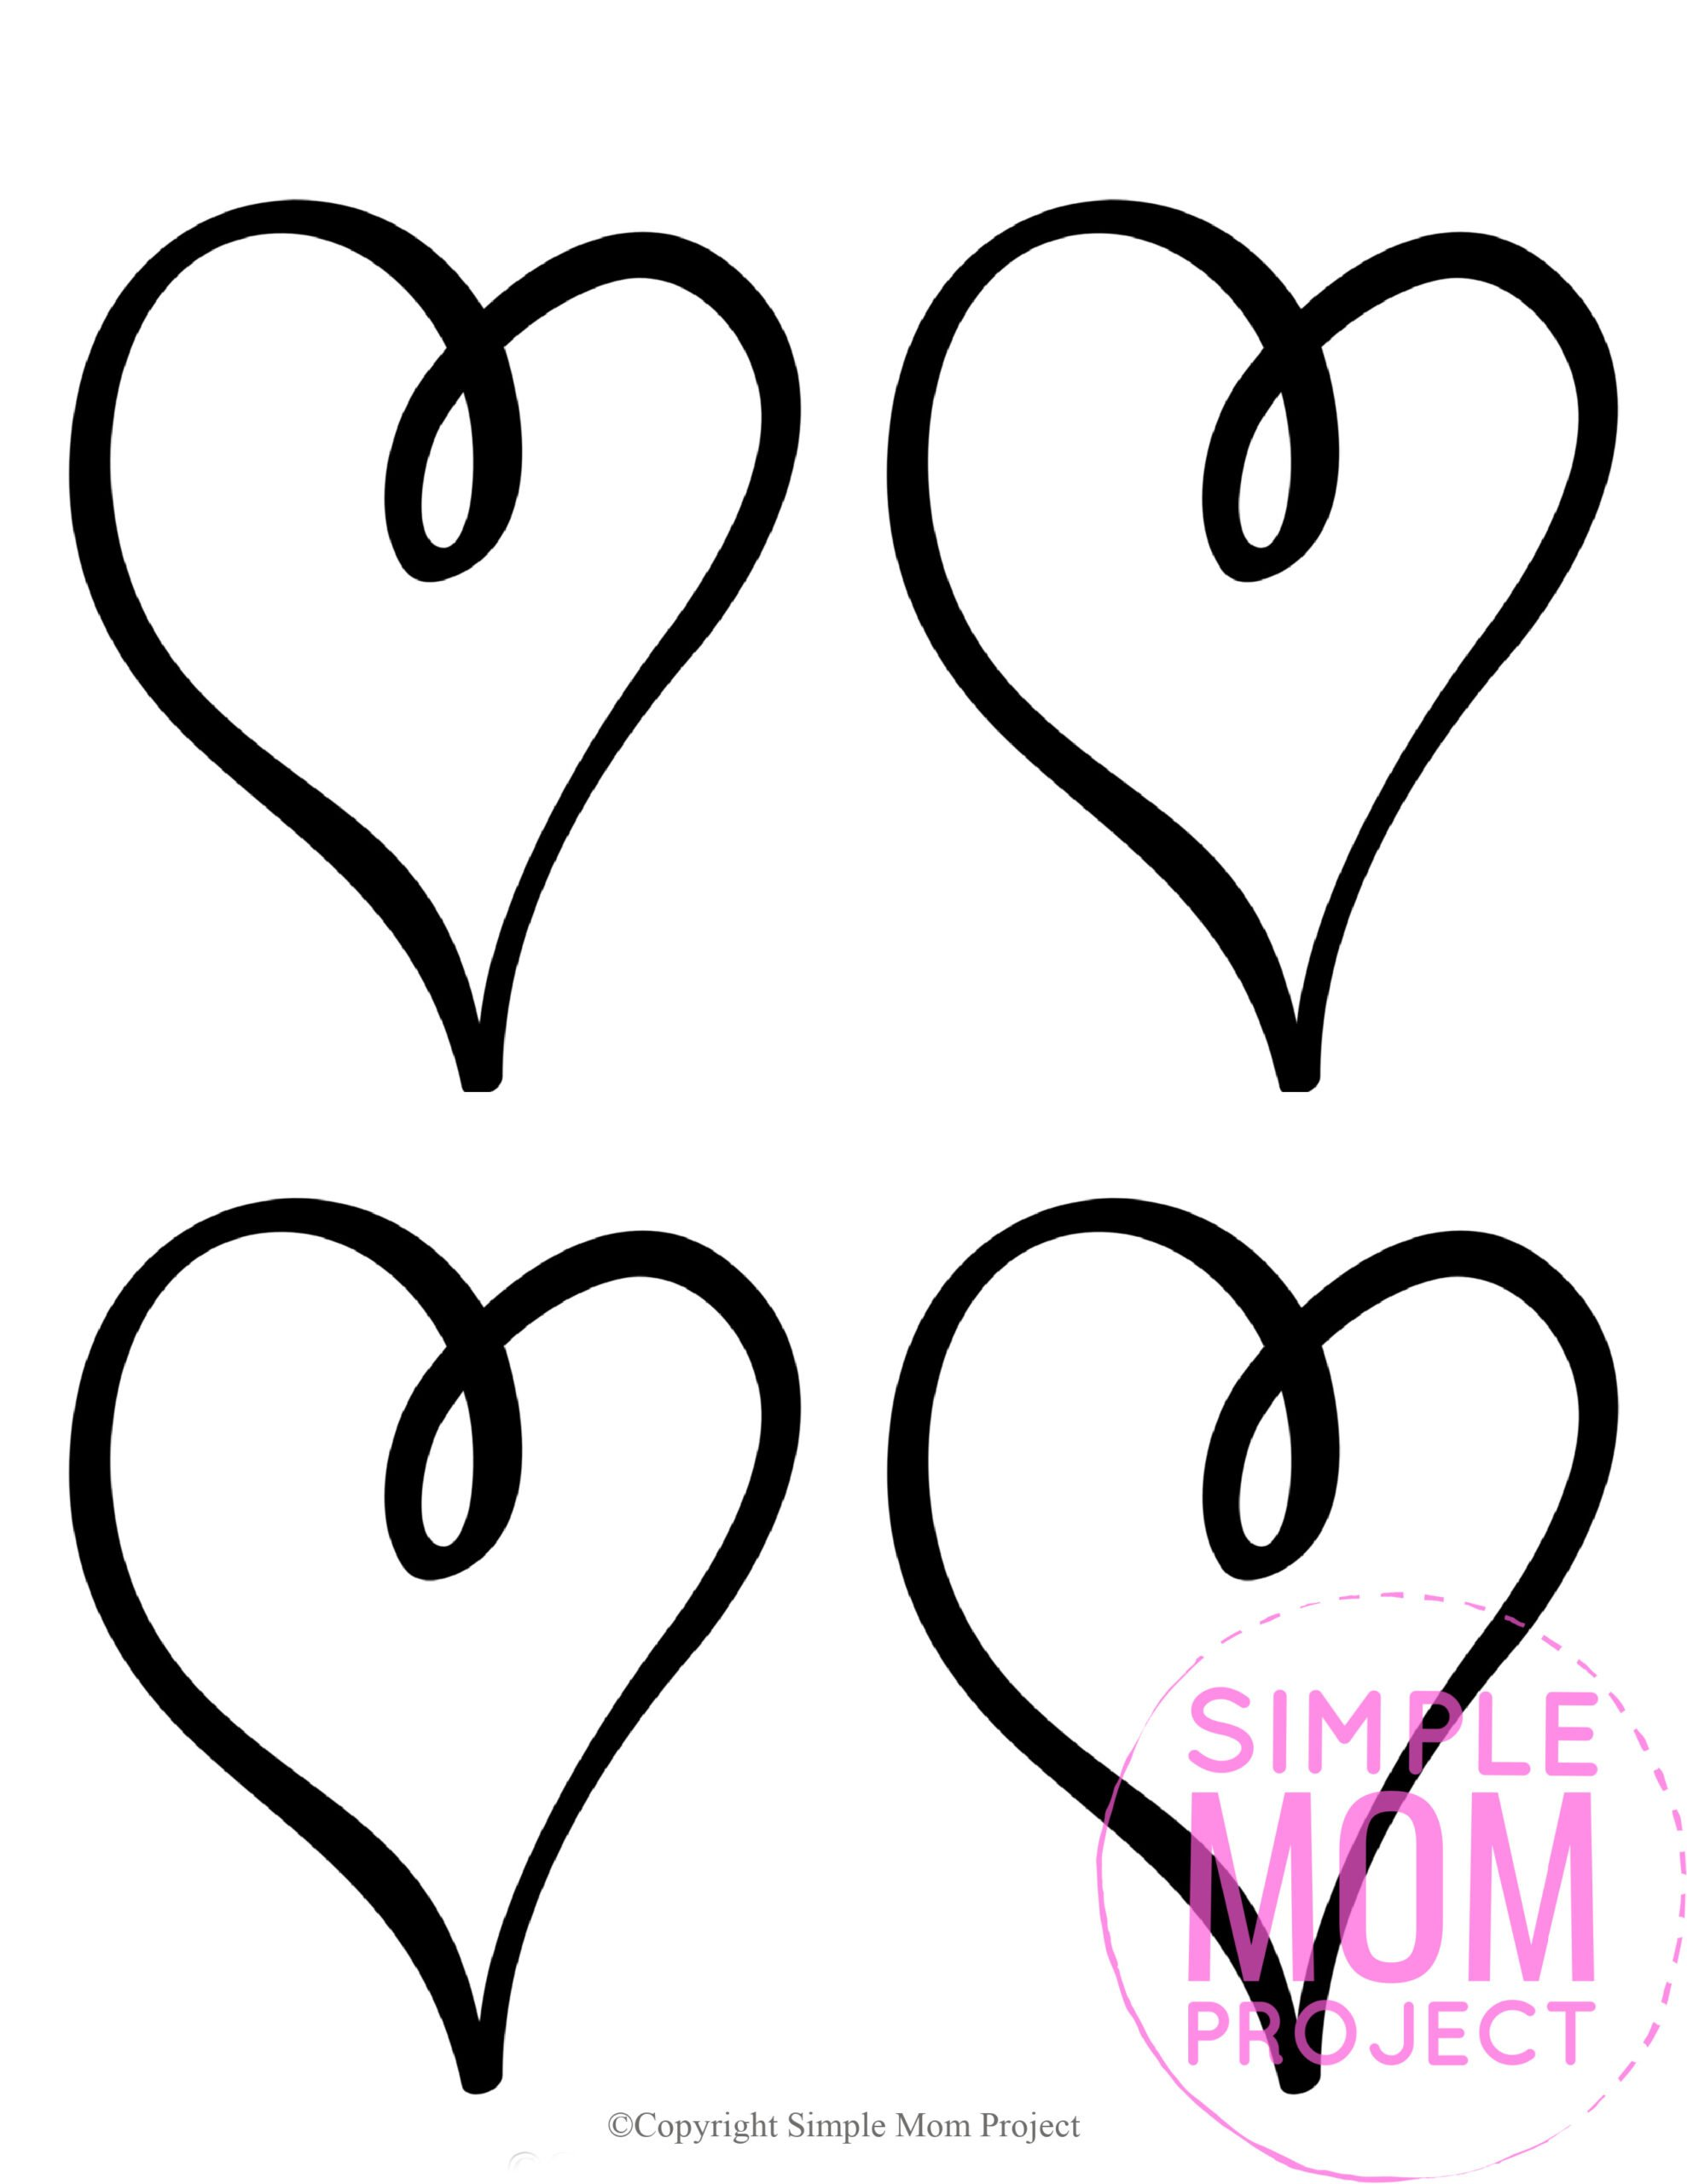 Free Printable Small Shape Heart Template heart stencil heart cut out heart outline